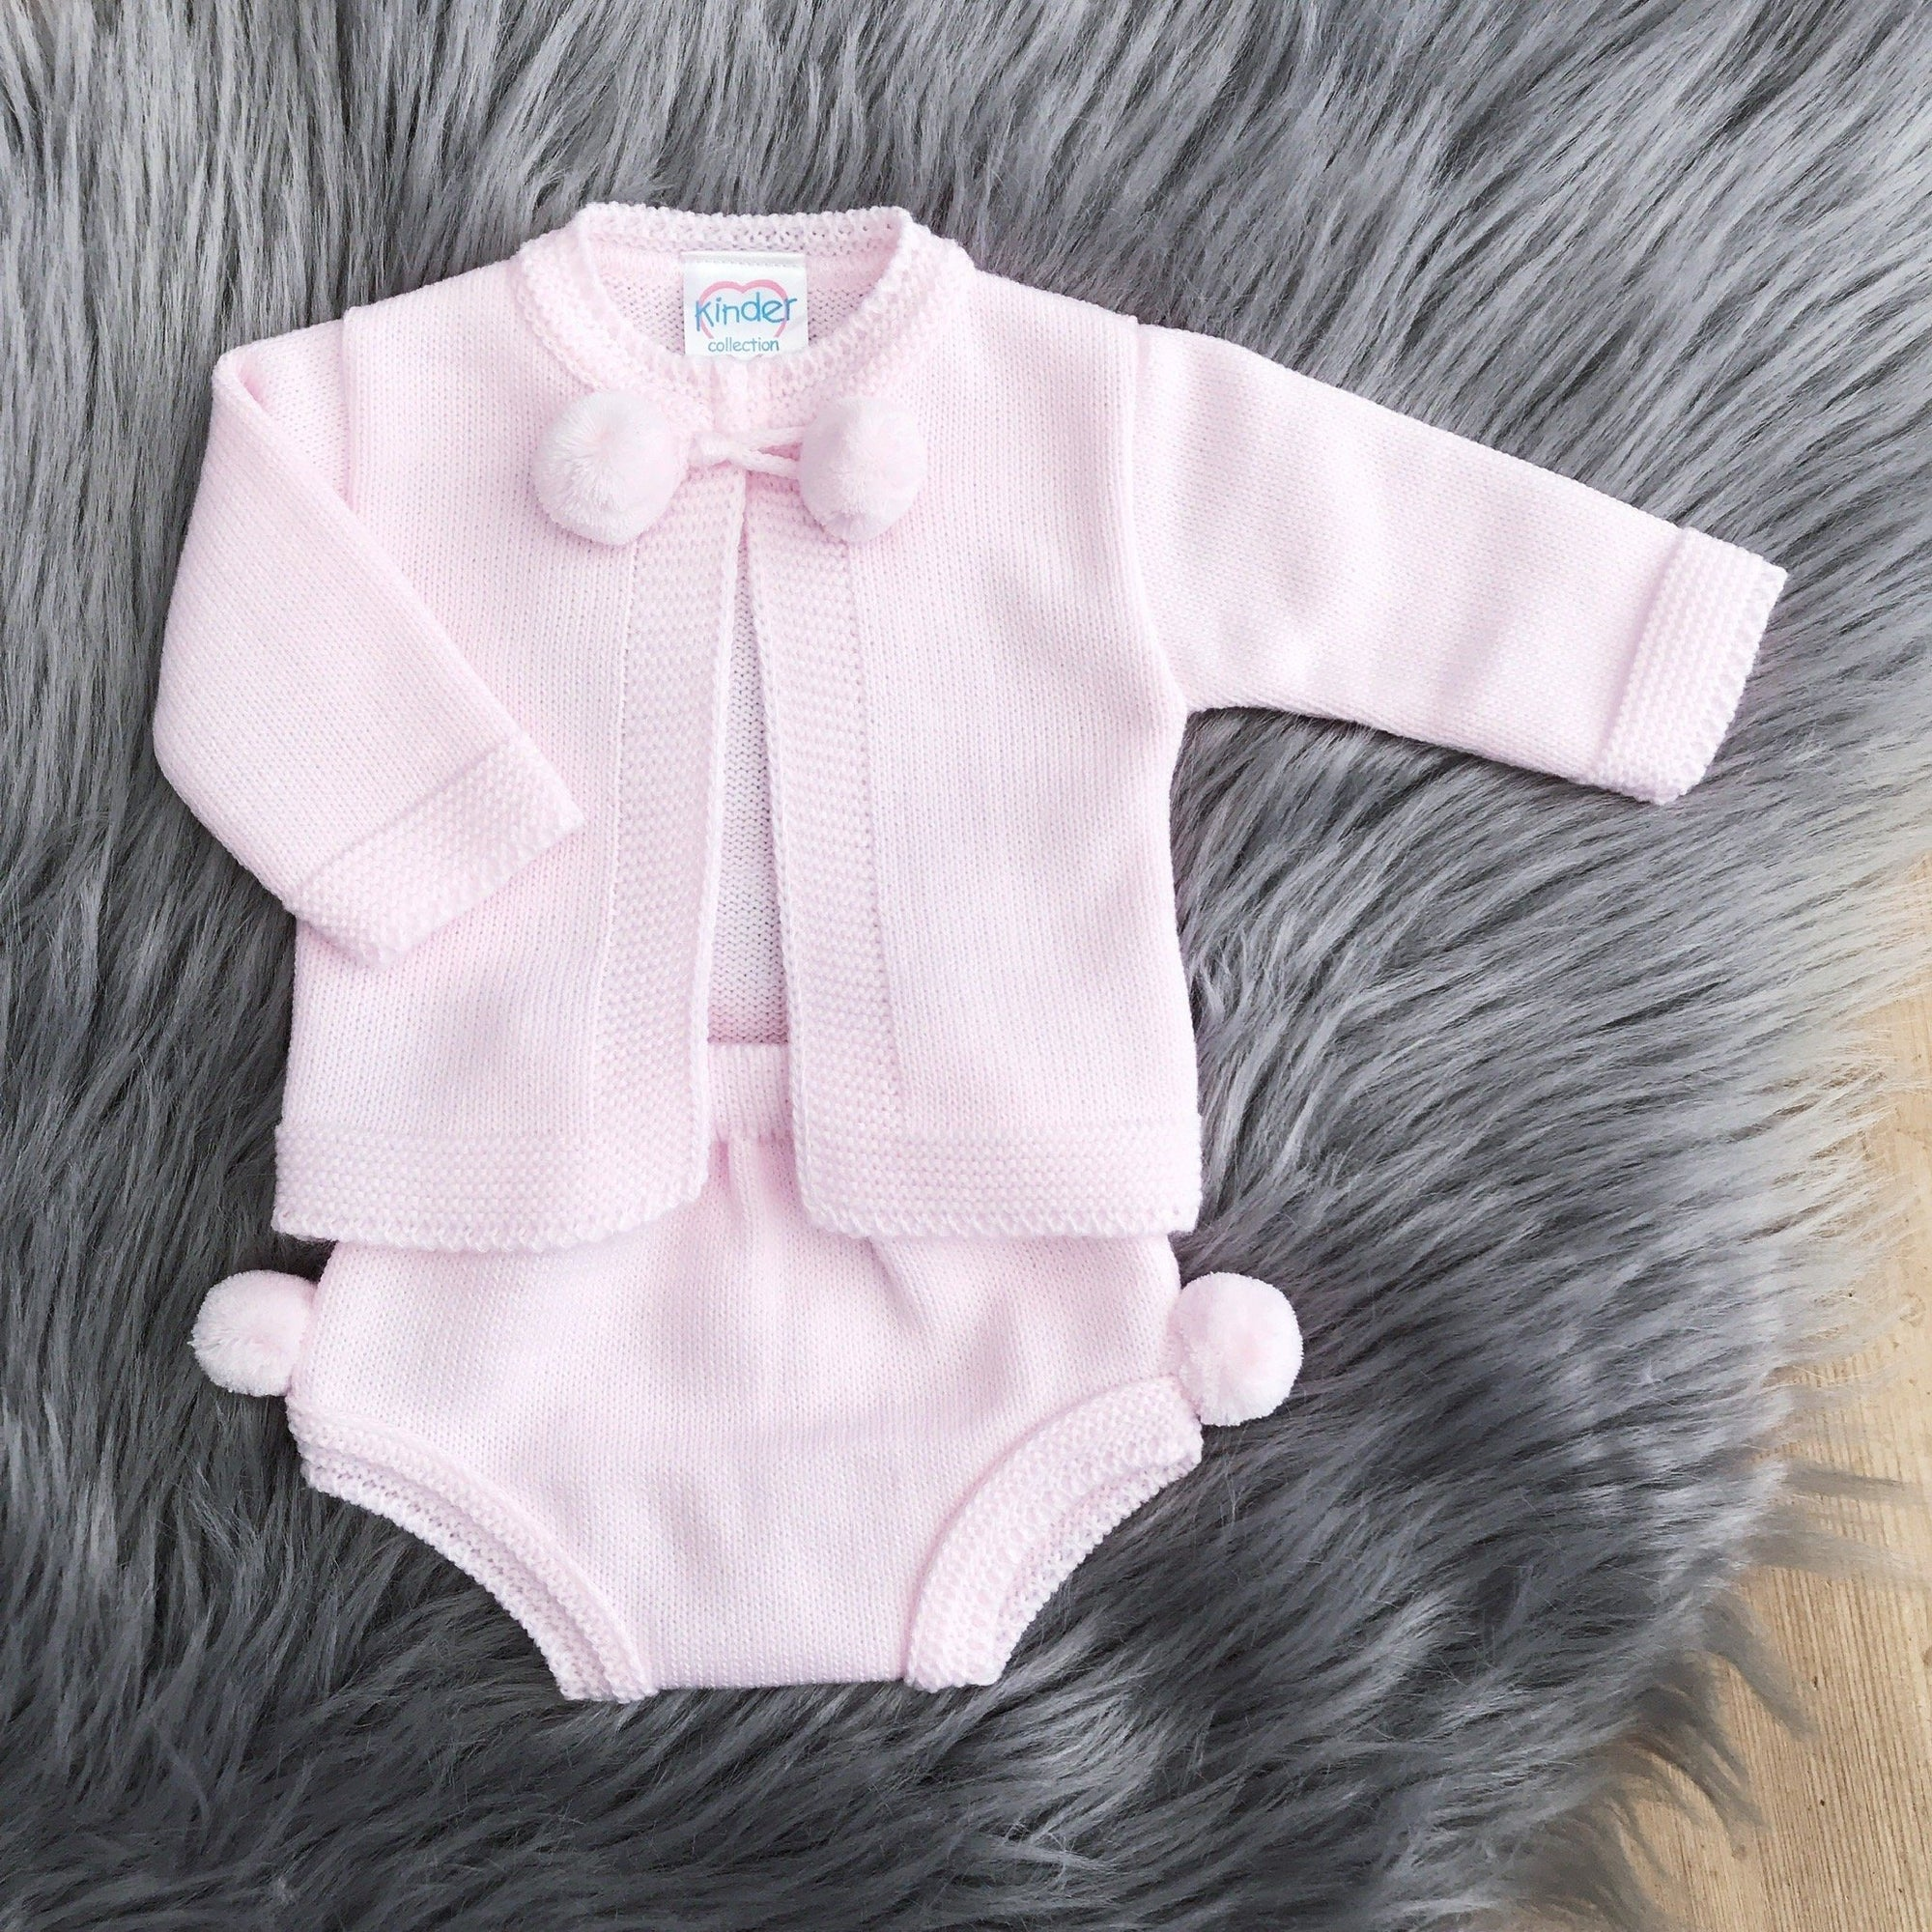 Kinder Pink Knitted Pom Pom Cardigan & Pants | Millie and John